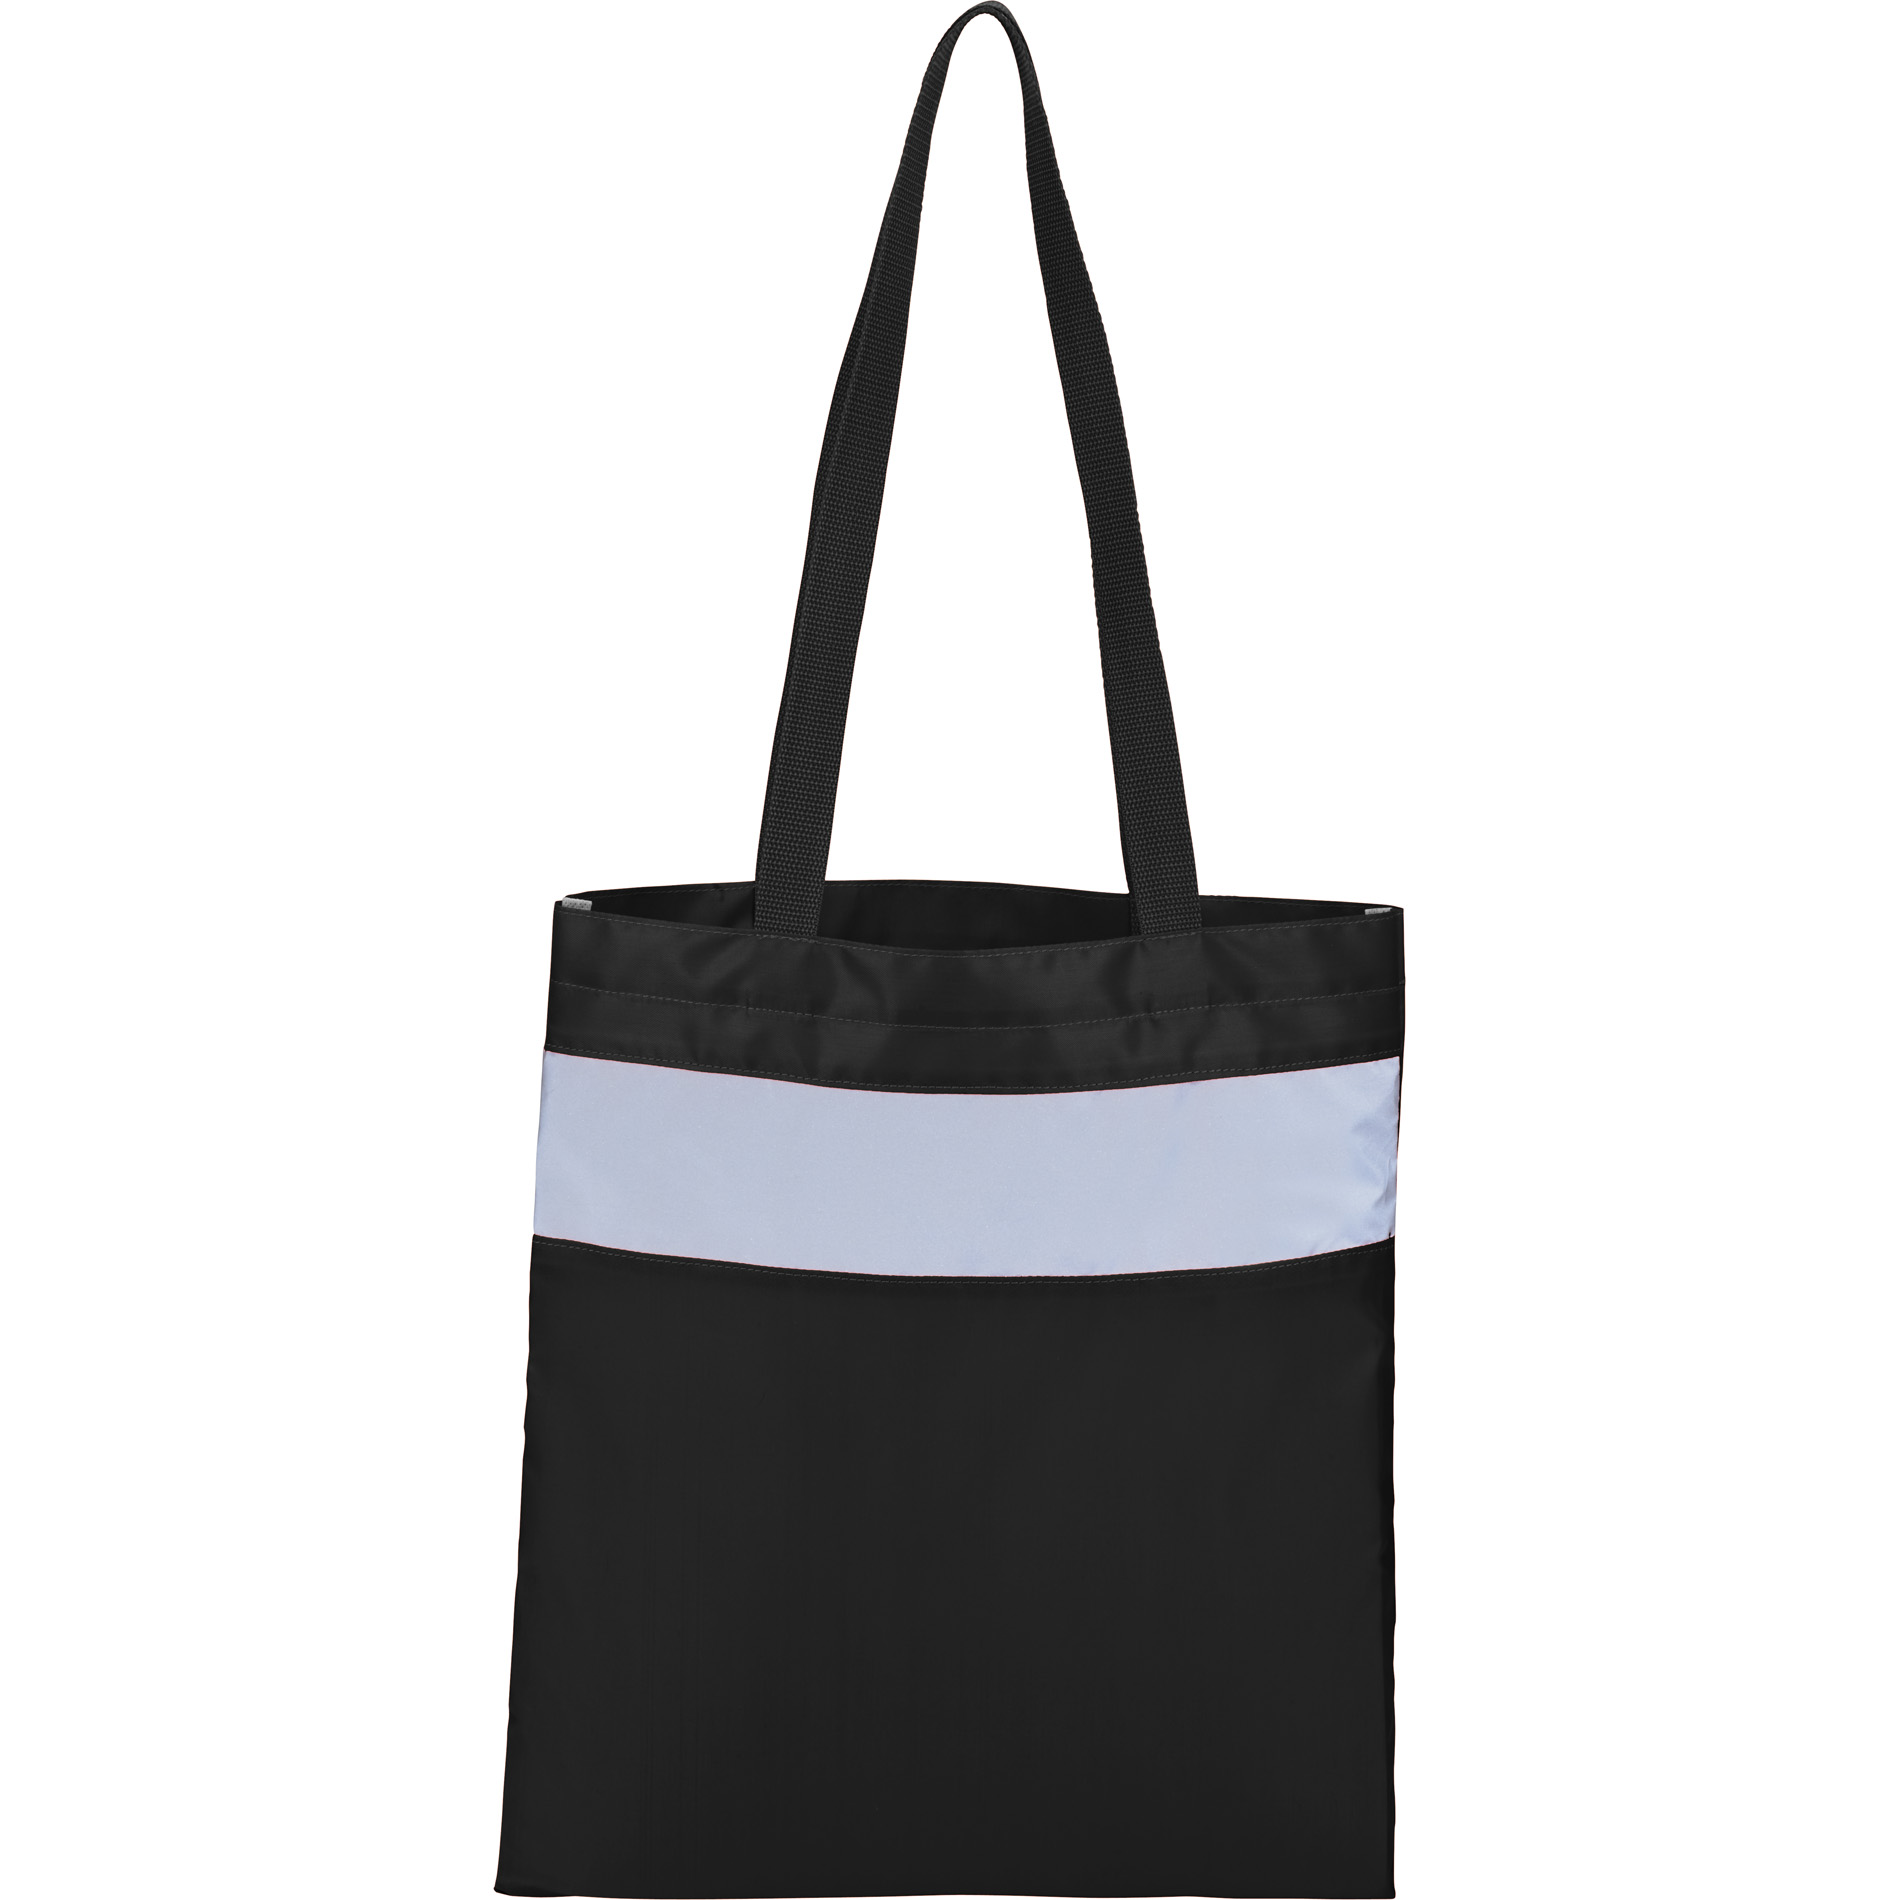 LEEDS SM-5790 - Reflective Convention Tote